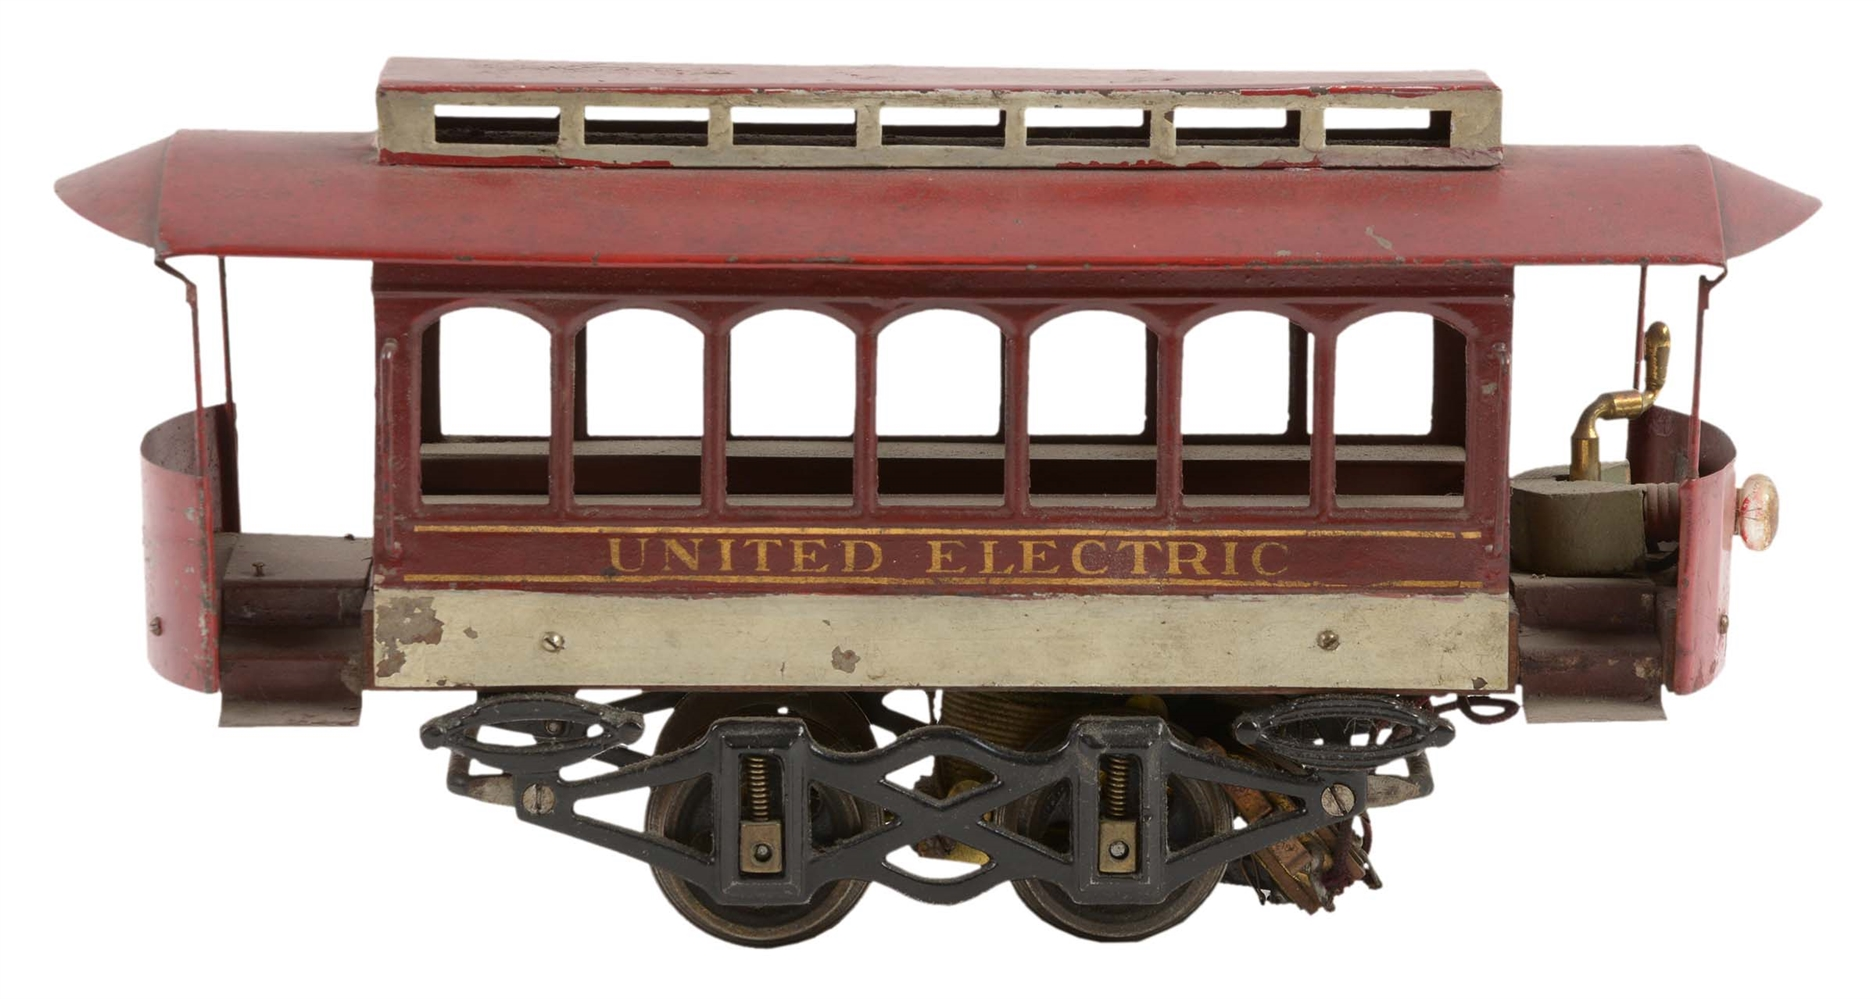 Early Voltamp United No. 2120 Electric Trolley.